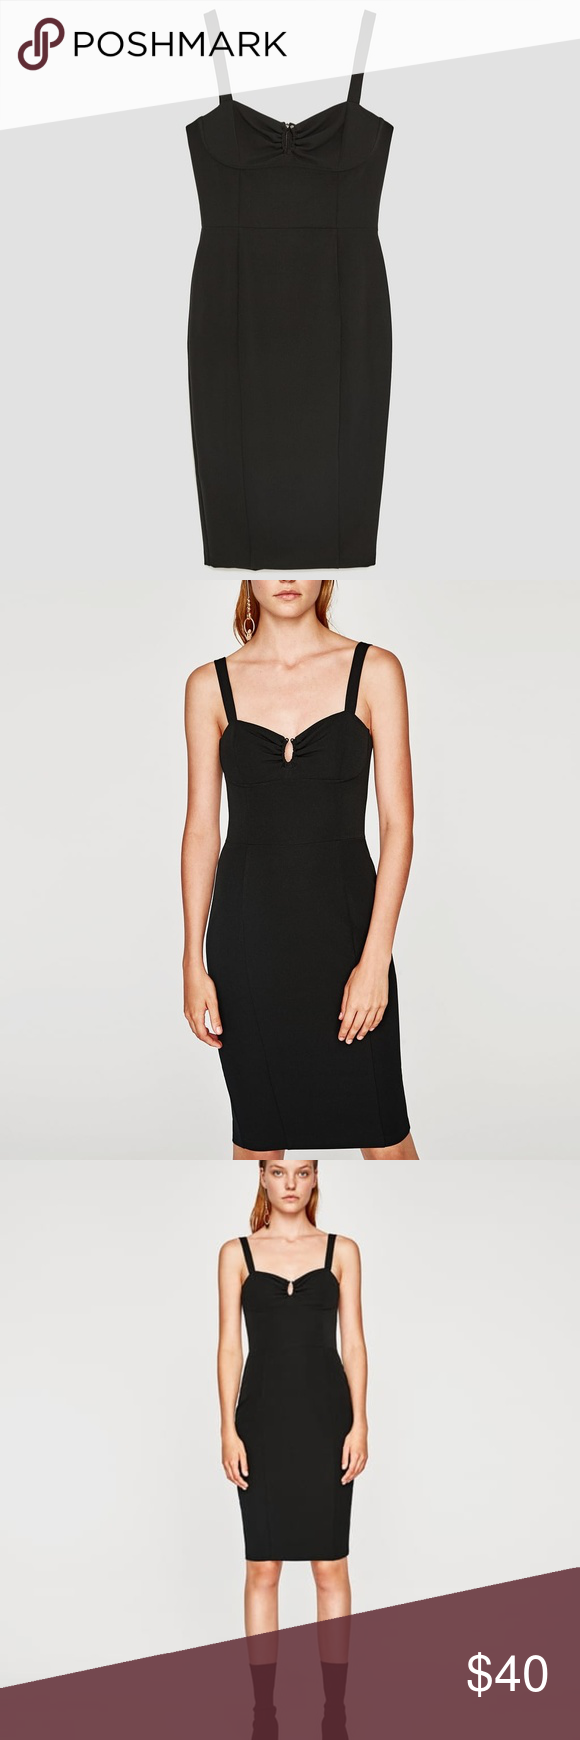 Zara black dress nwt zara black dress zara black and zara dresses